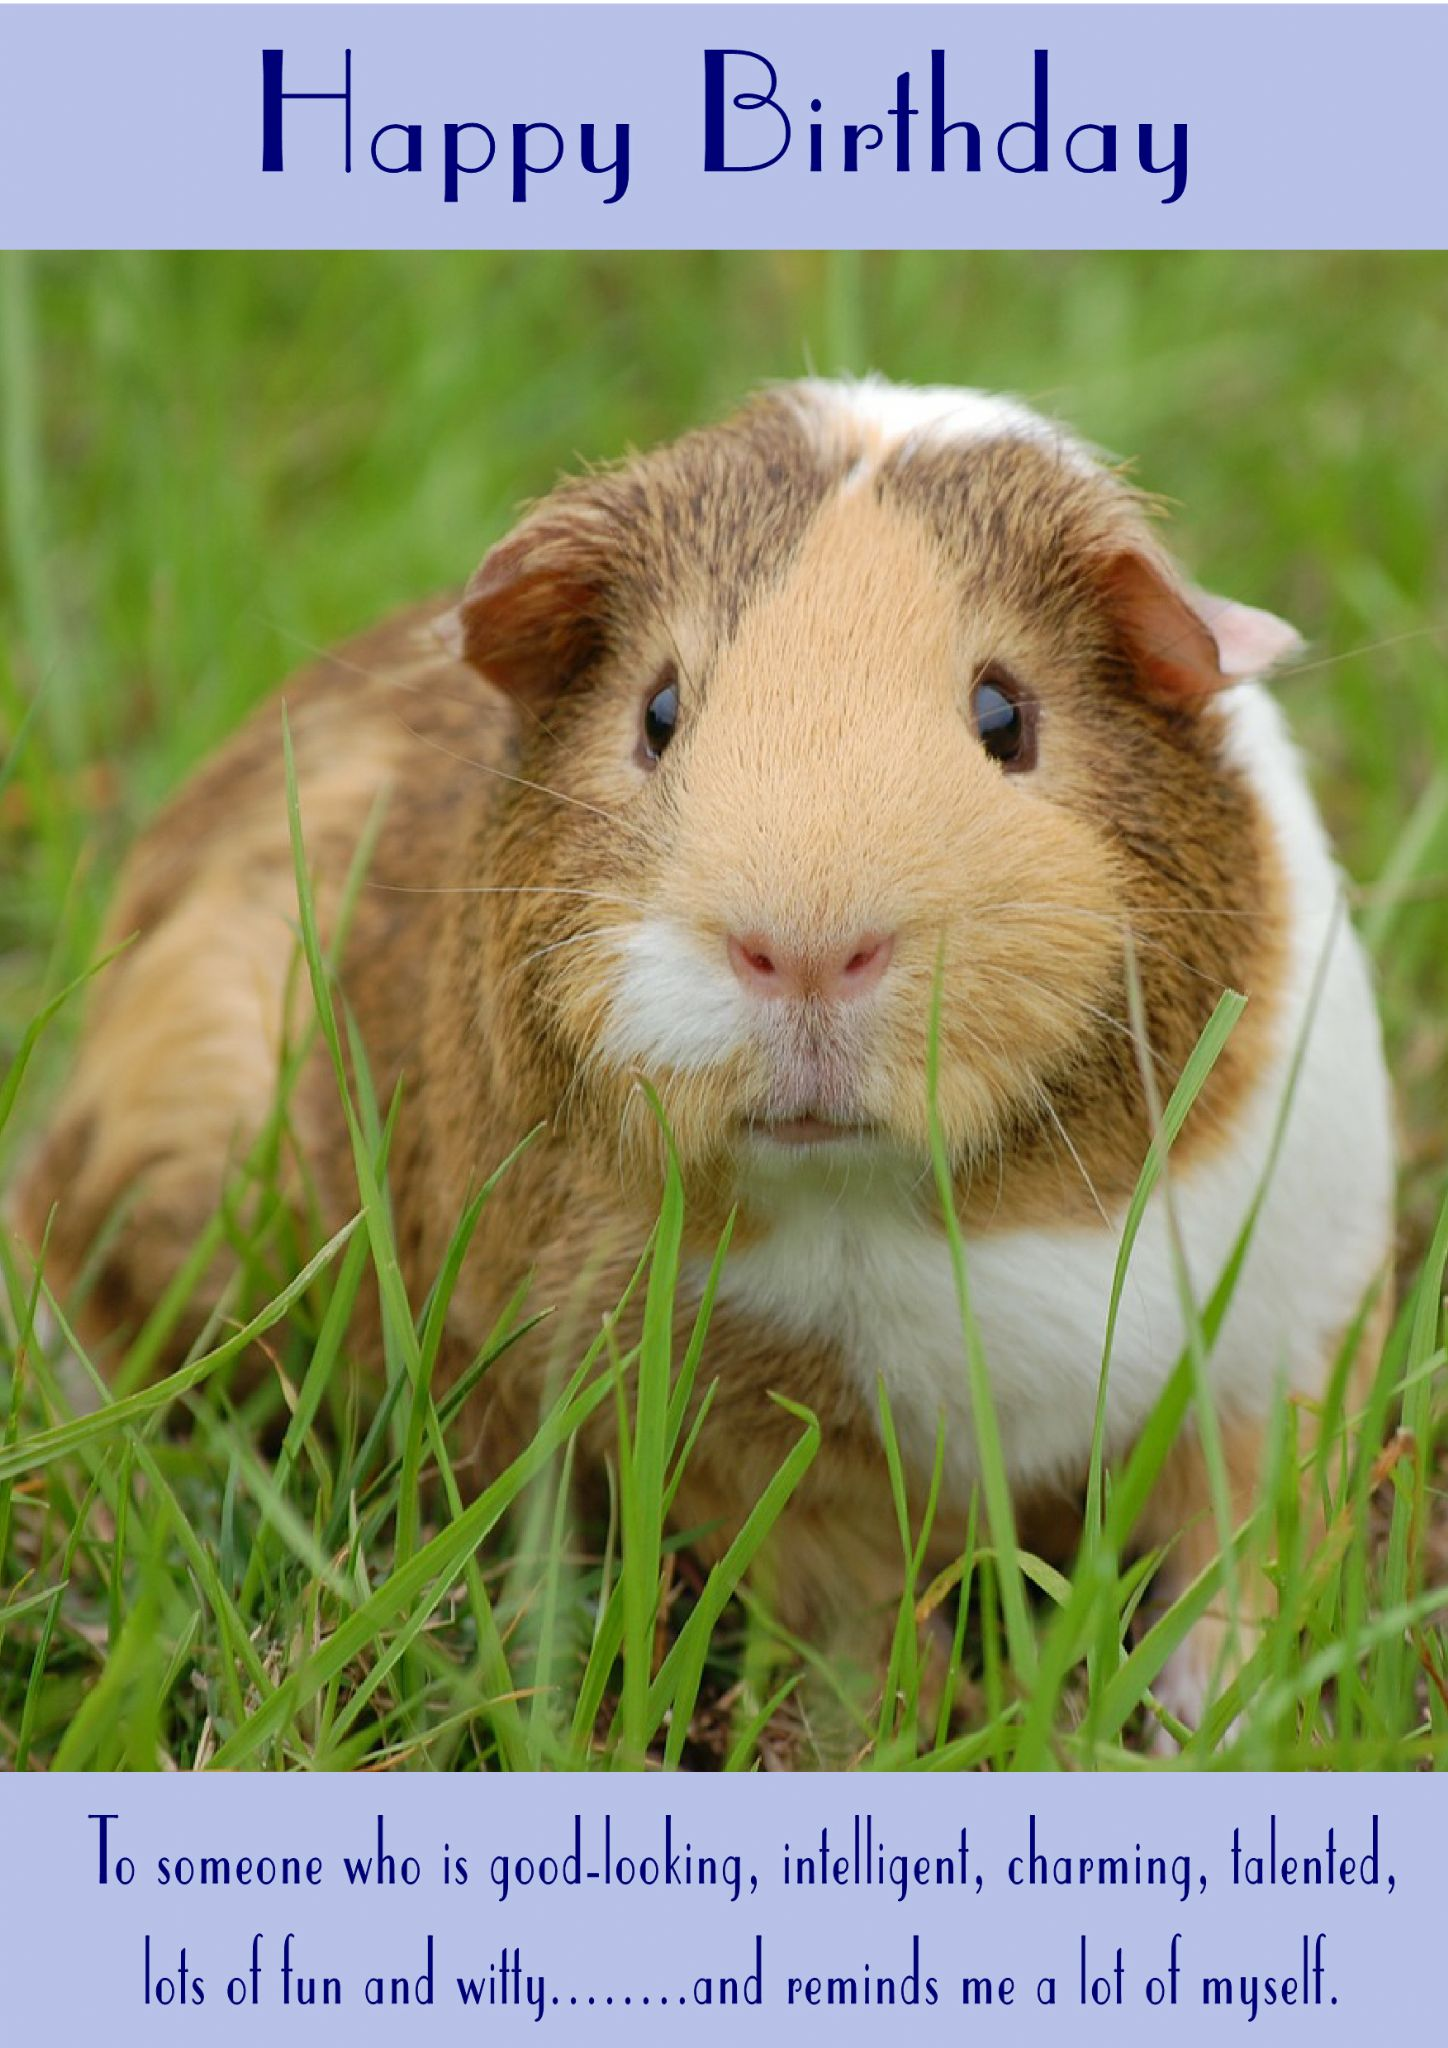 Guinea Pig Happy Birthday Reminds Me A Lot Of Myself Theme